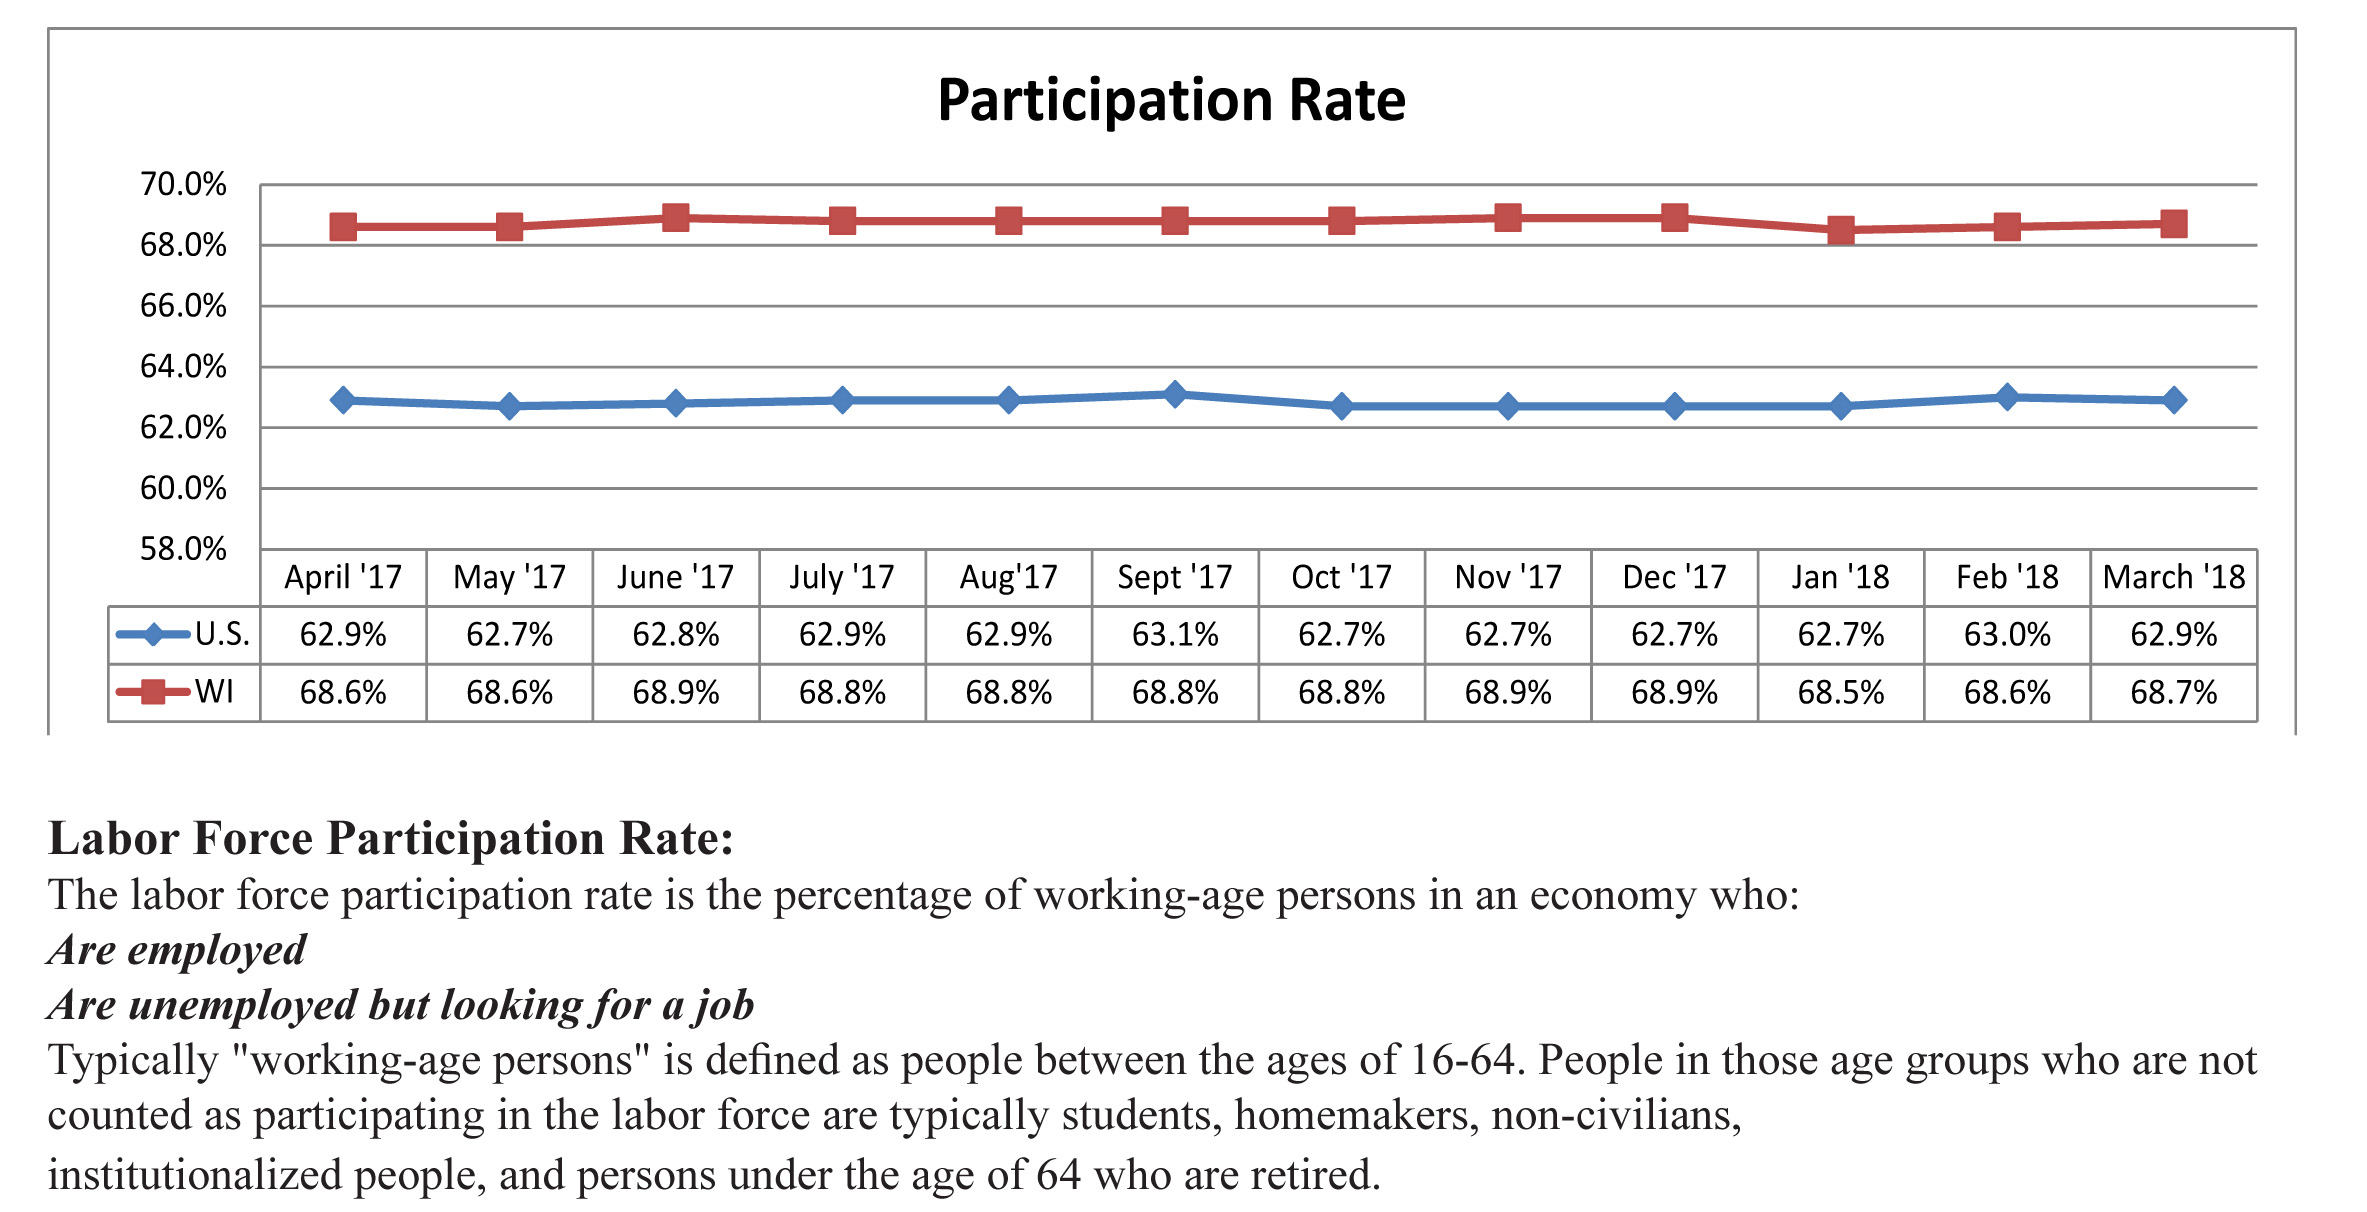 March 2018 Participation Rate